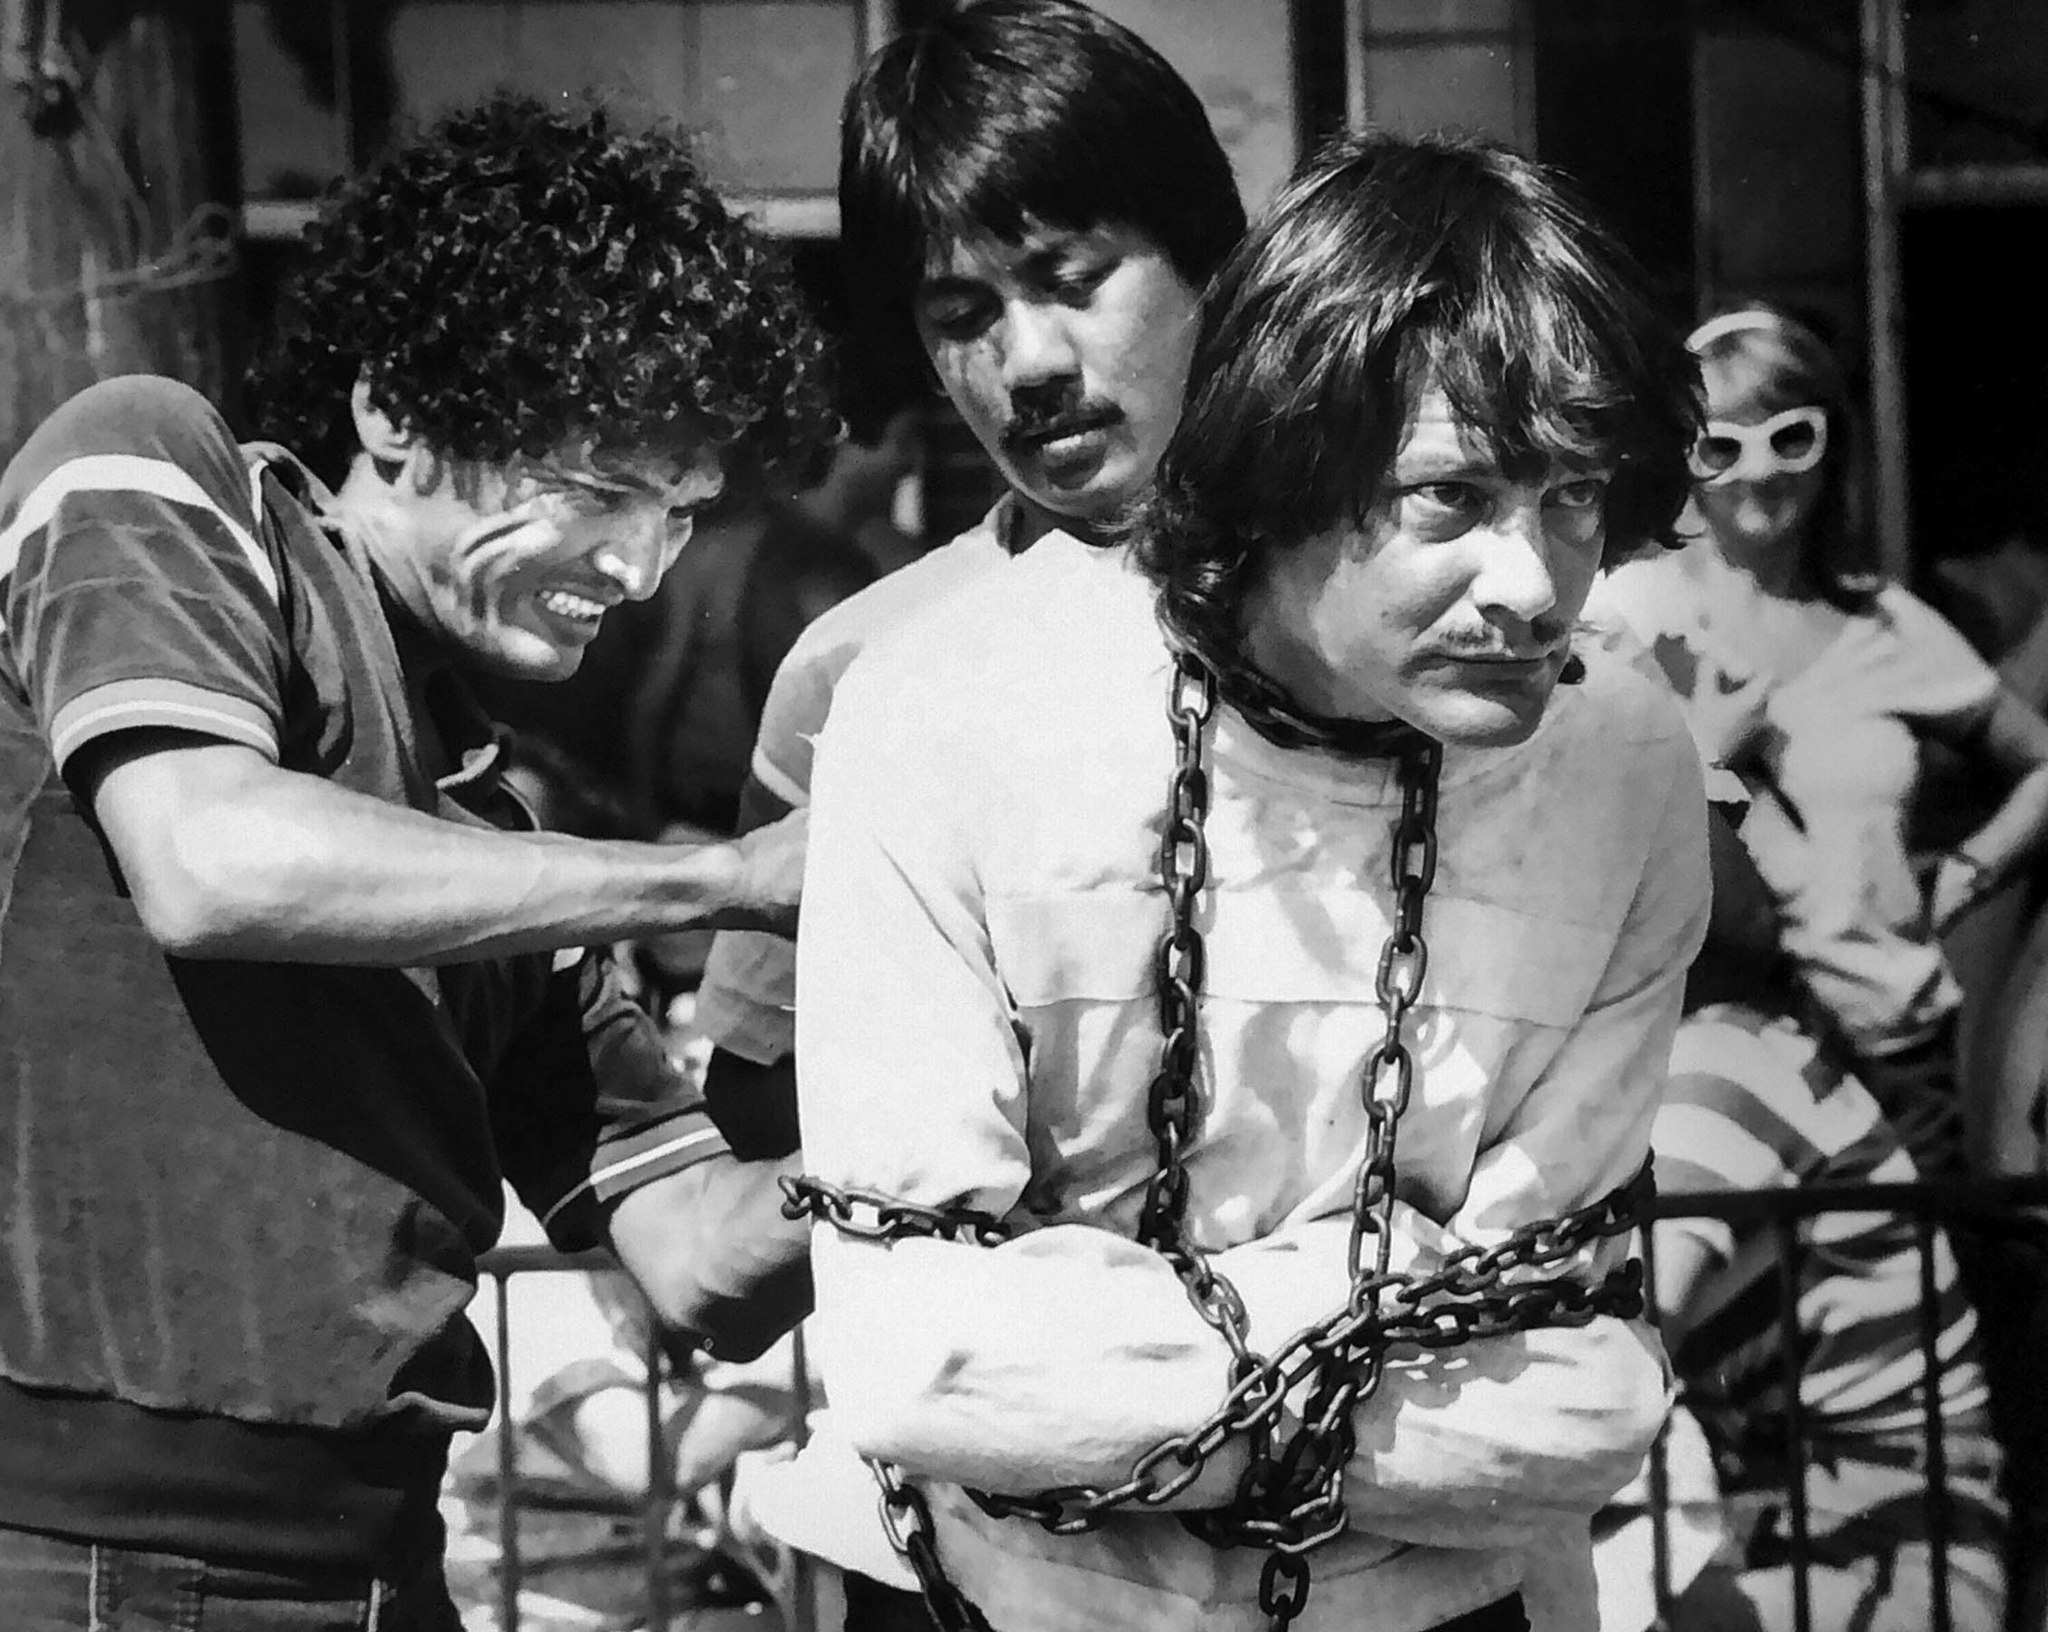 July 1984: Escape artist Tim Eric is placed in chains and straitjacket at Venice Beach. He escaped